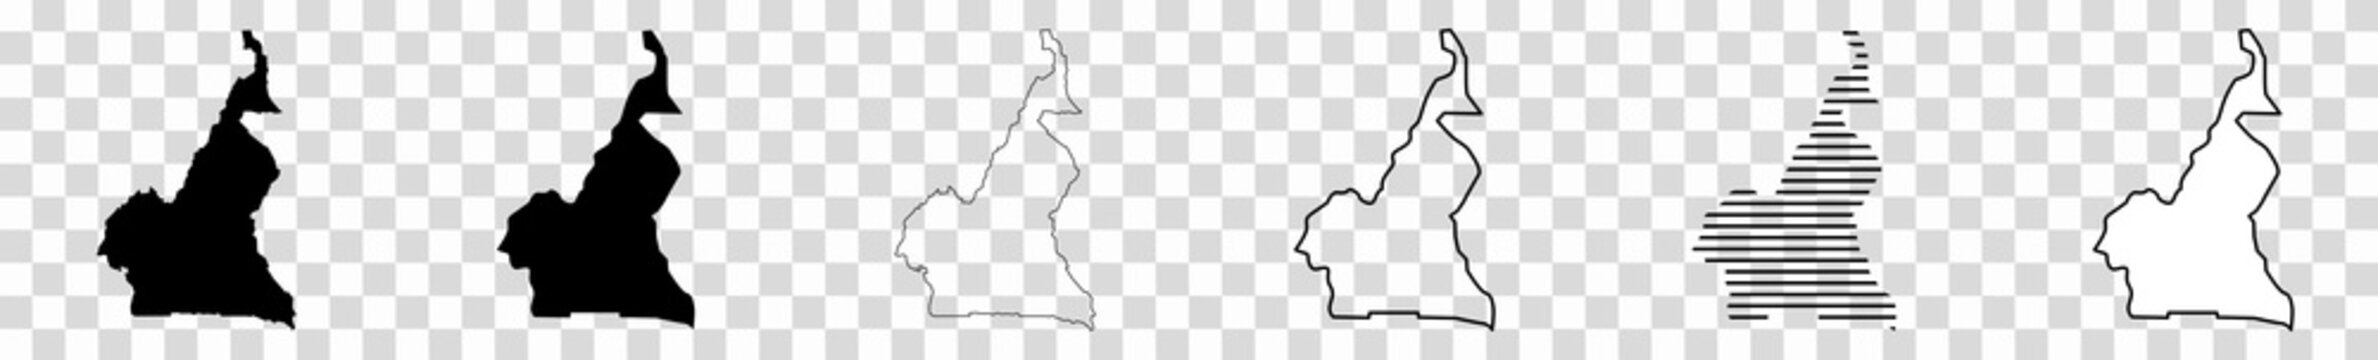 Cameroon Map Black   Cameroonian Border   State Country   Transparent Isolated   Variations